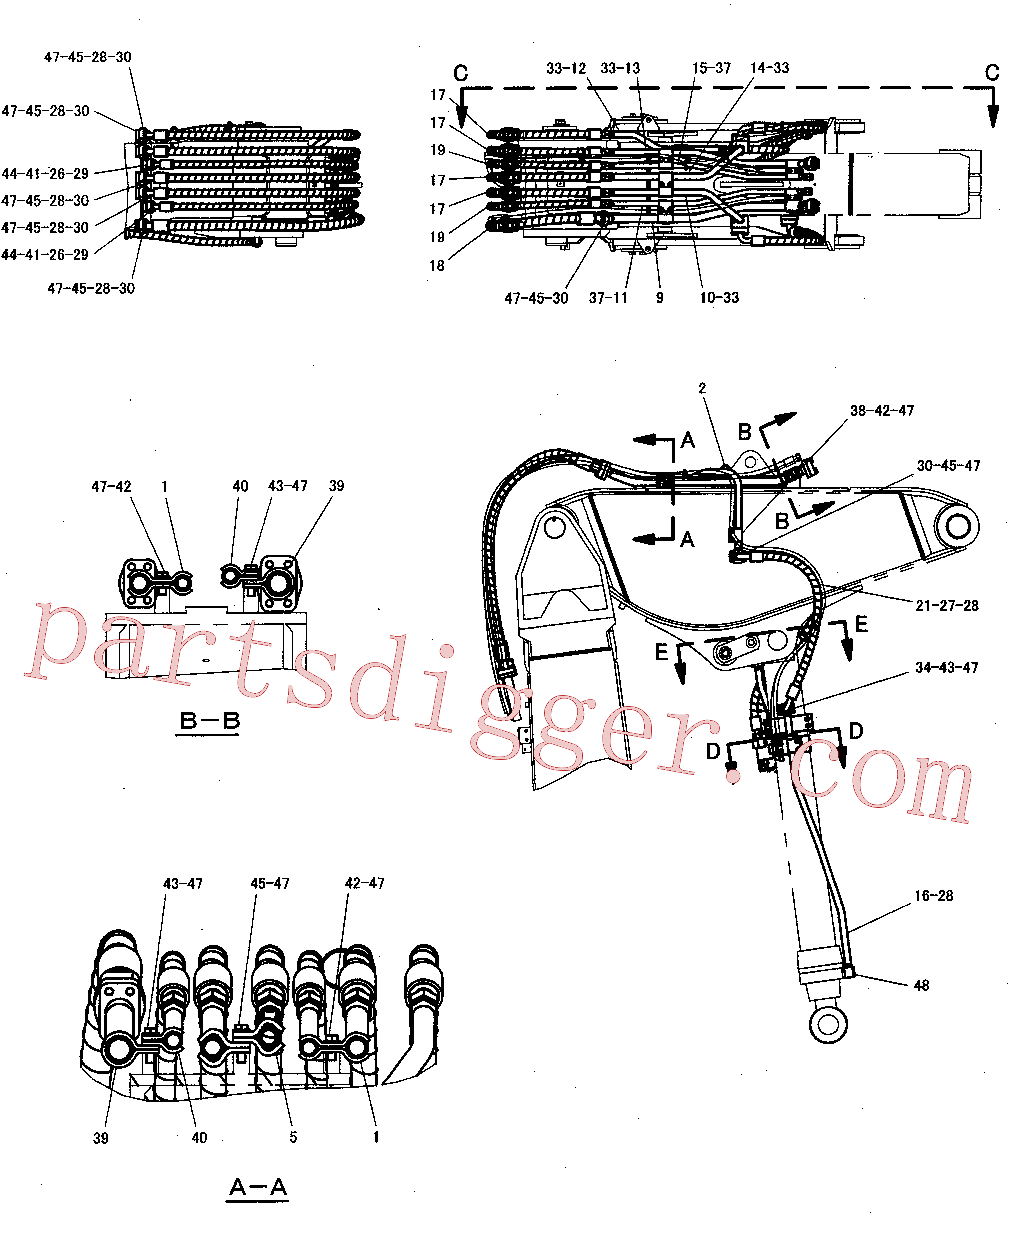 CAT 263-4710 for 345C Excavator(EXC) hydraulic system 300-8170 Assembly